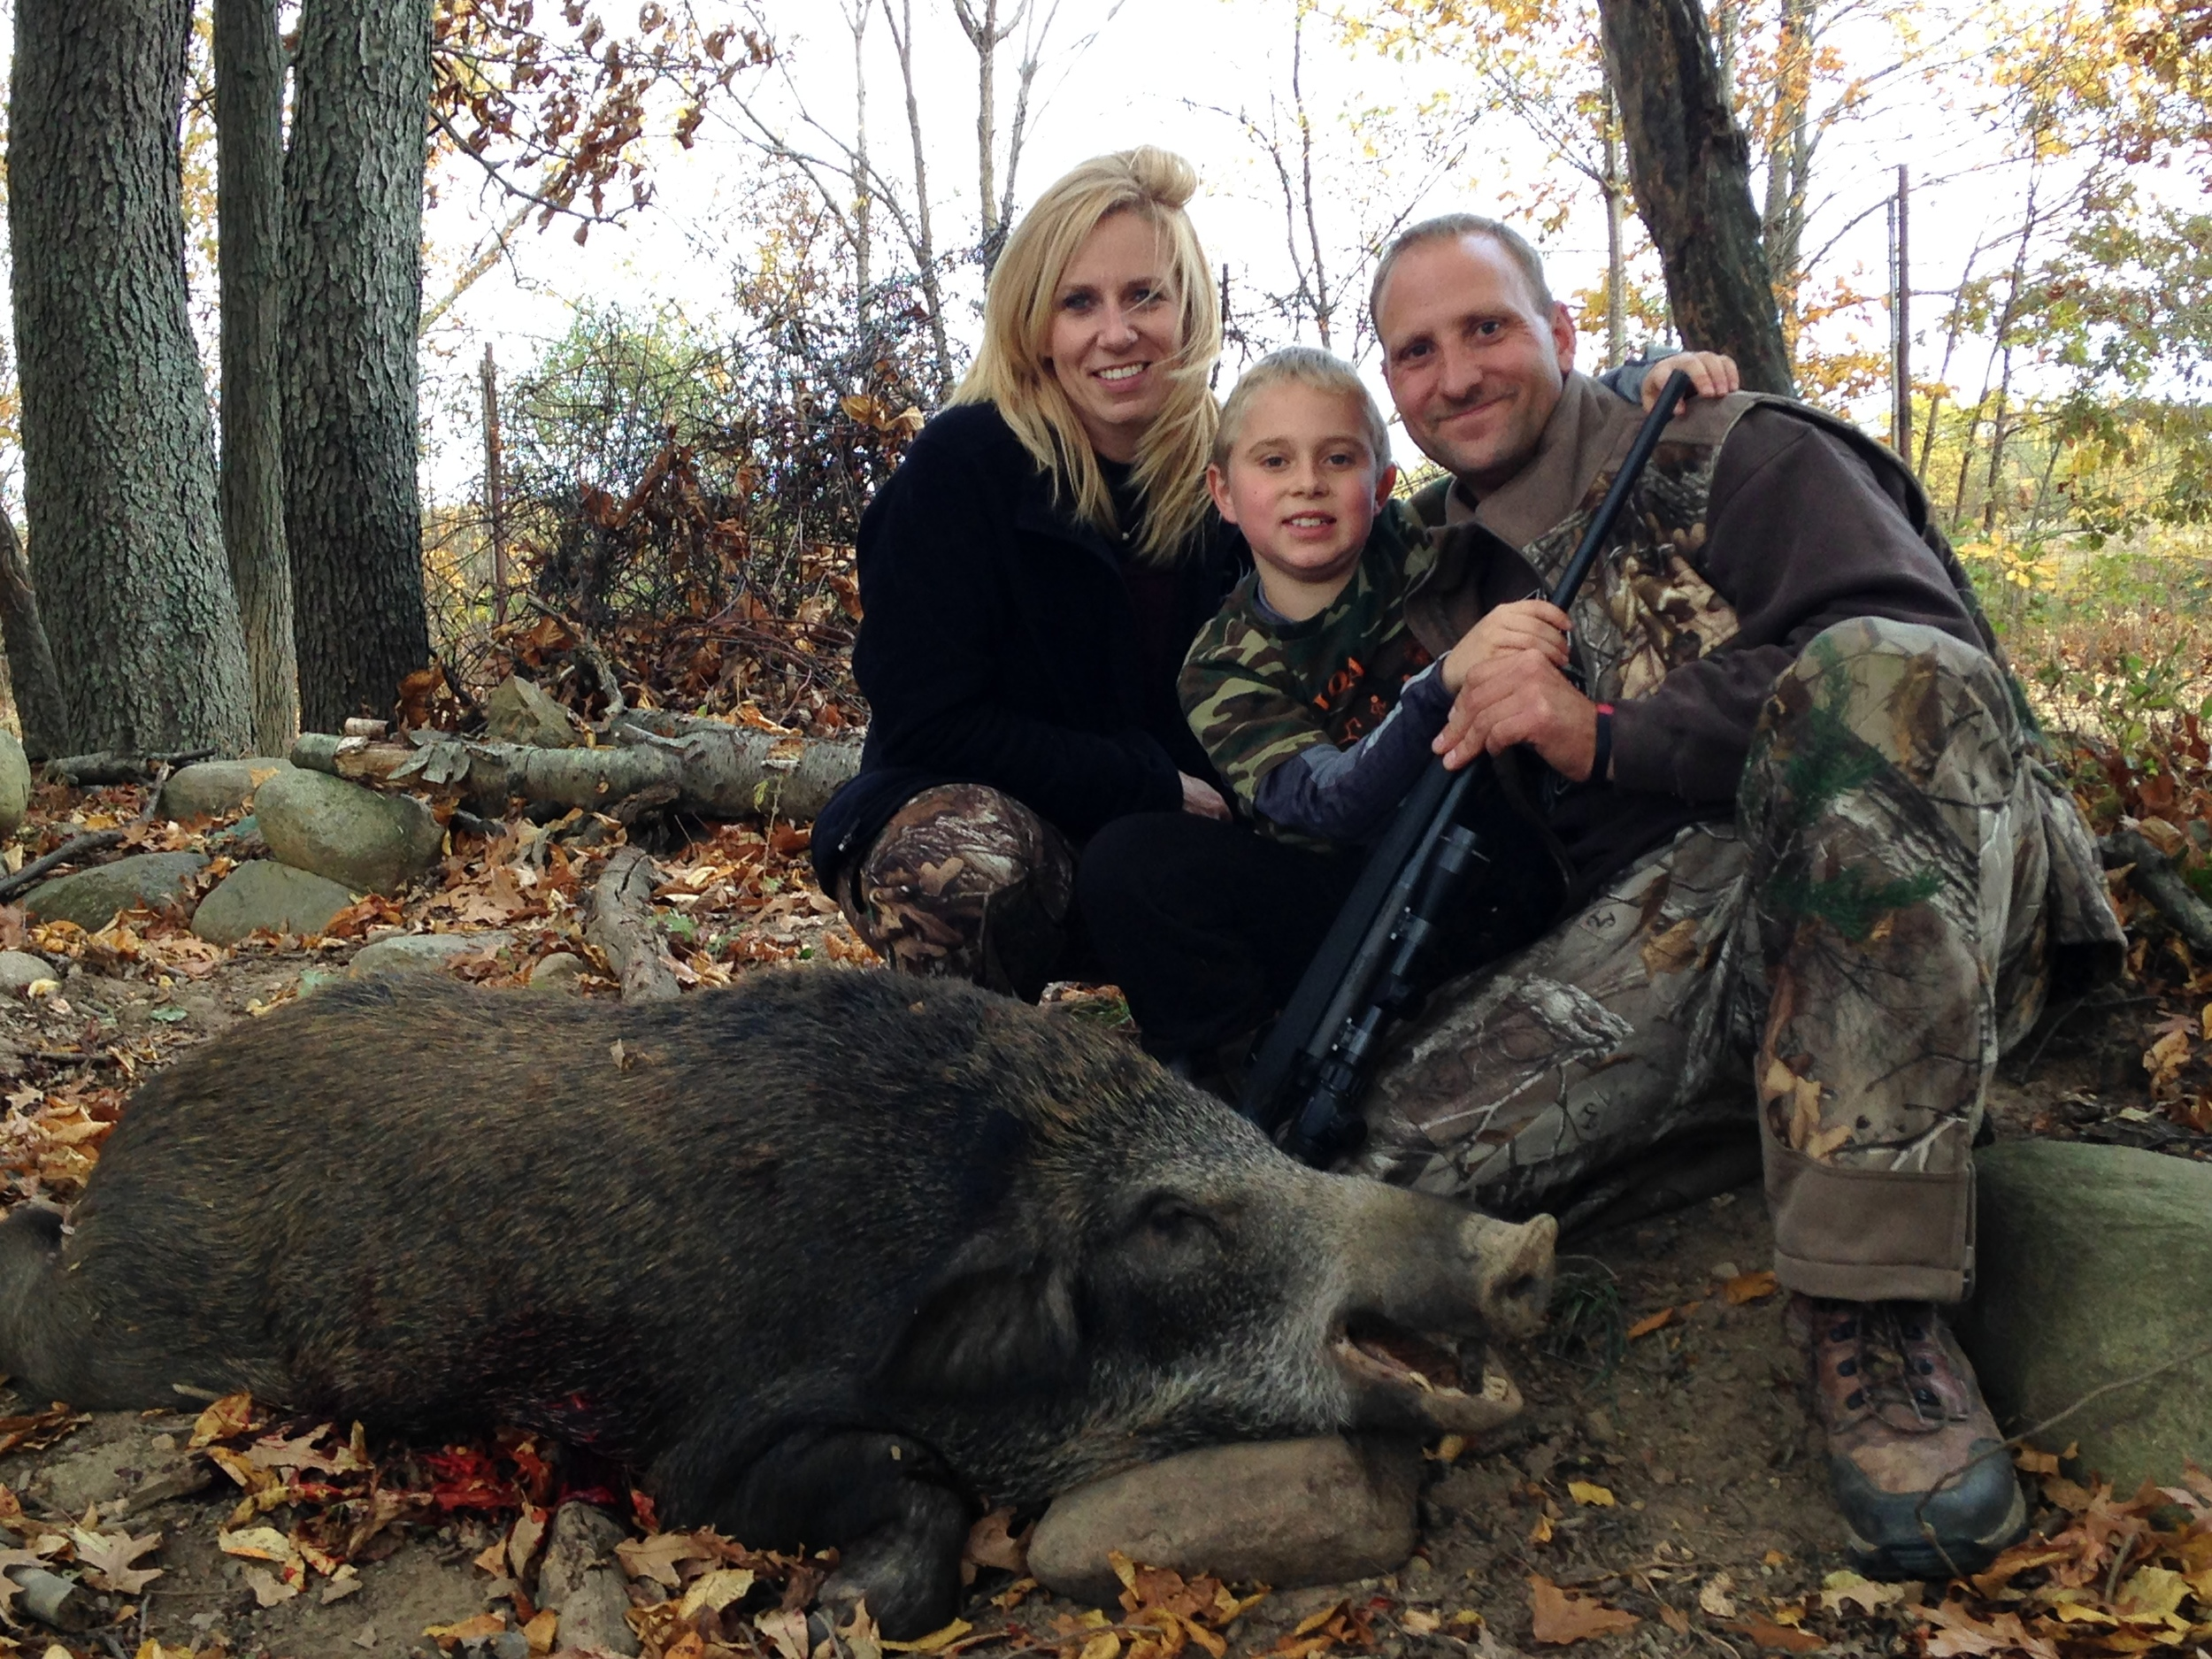 Braedan's first Wild Hog. Truly a Amazing experience to share this with him. He absolutely has a passion for hunting like no other.